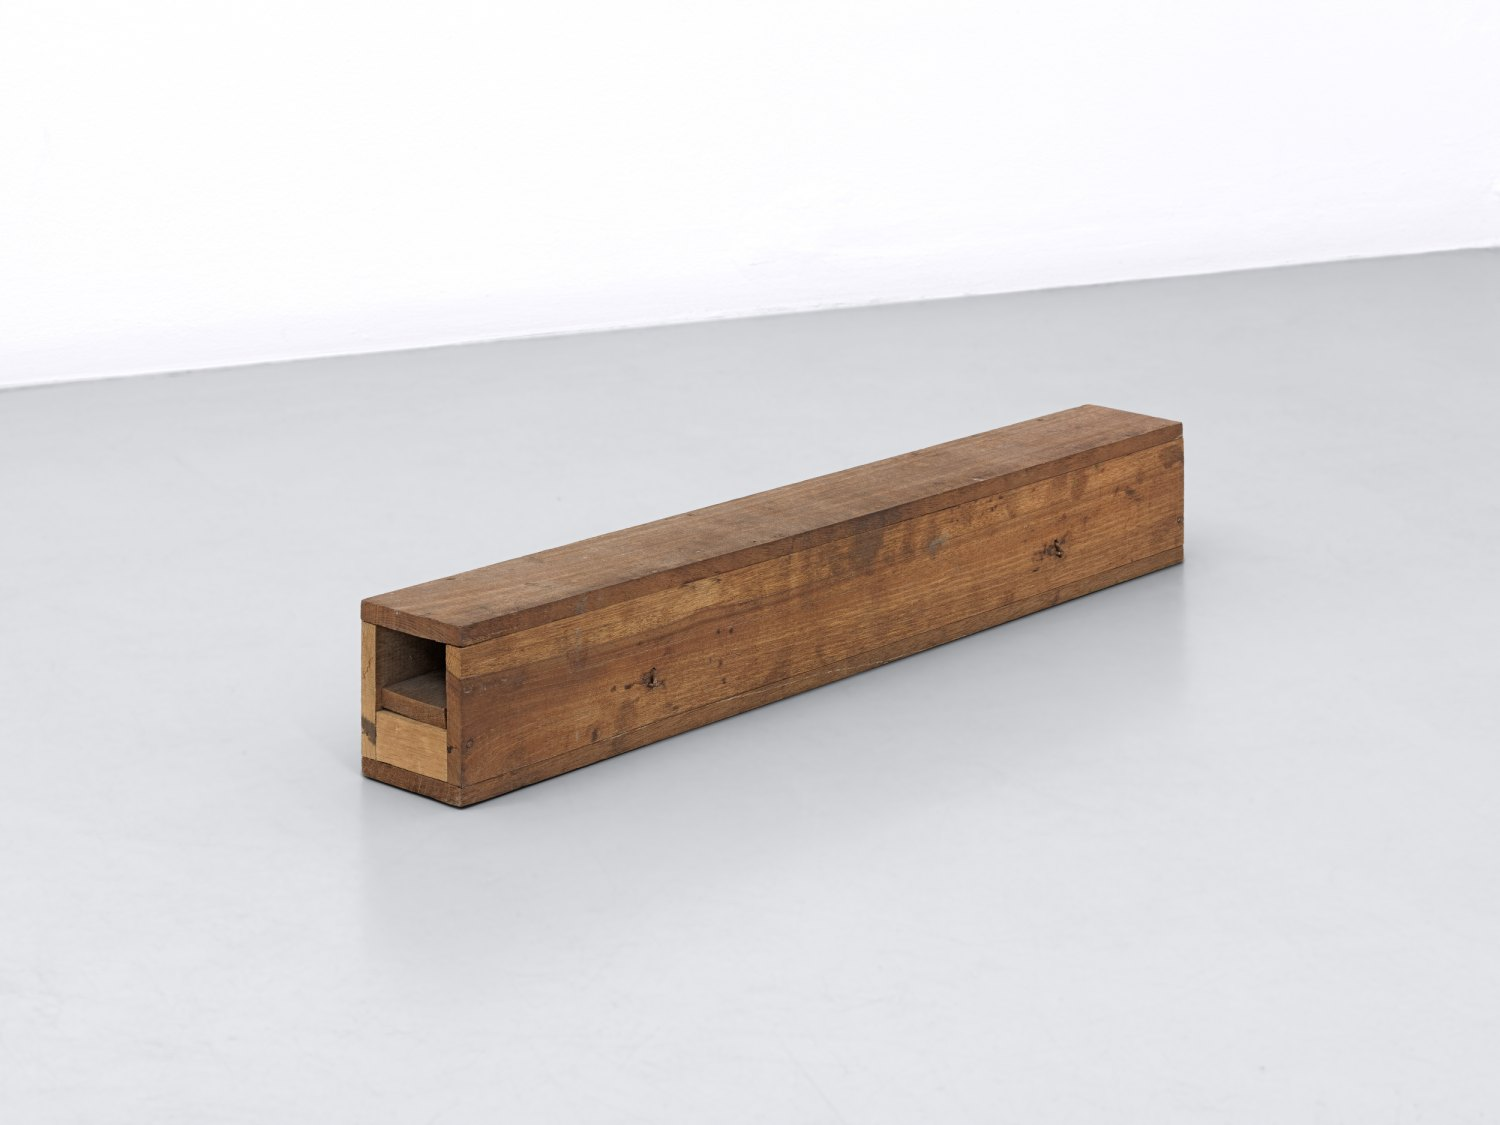 Andreas Slominski Untitled, 1998 Wood, metal, 9 × 70 × 11 cm